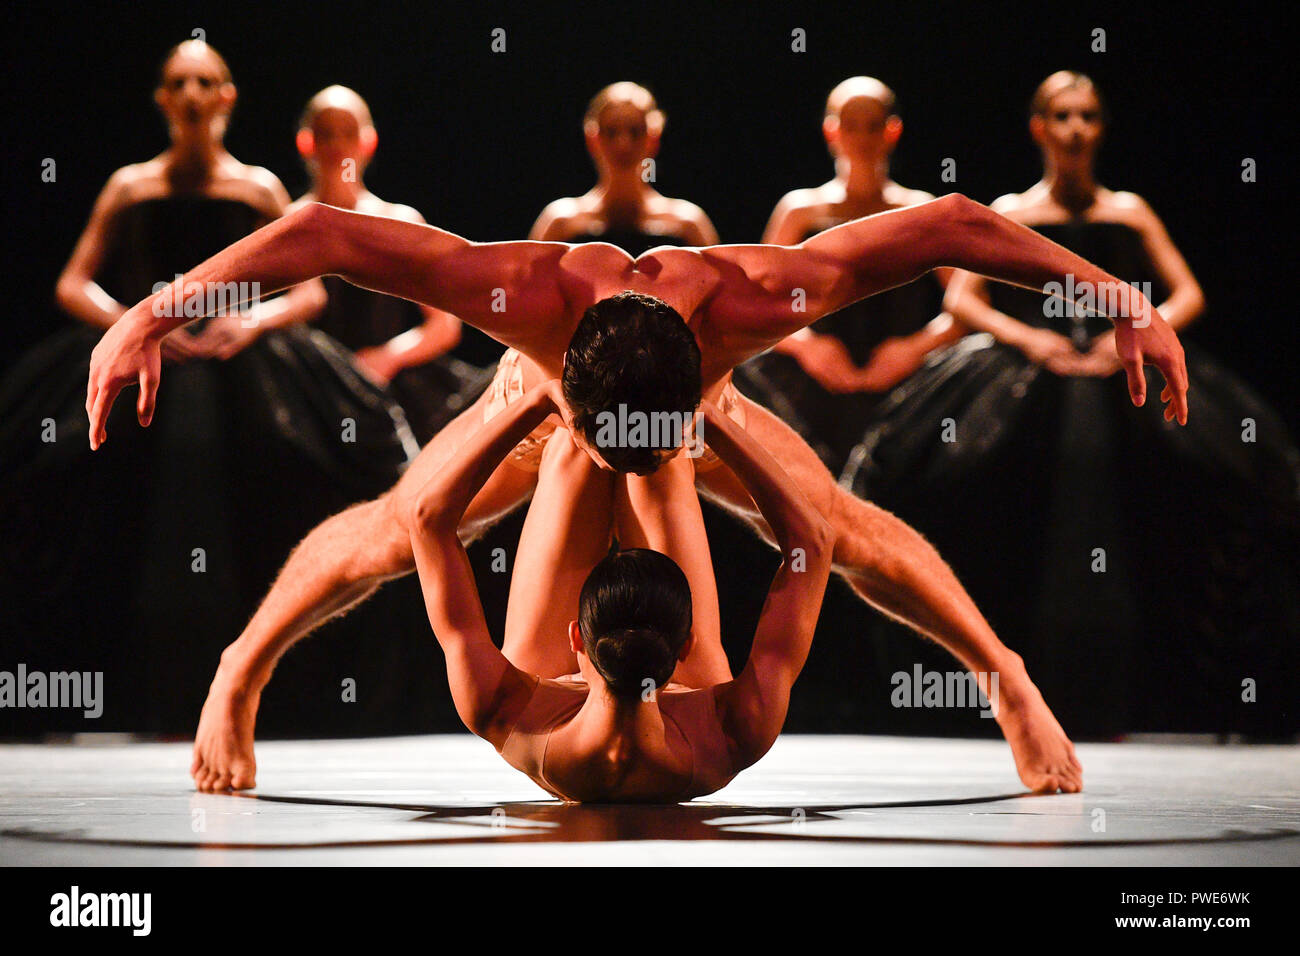 """Prague, Czech Republic. 09th Oct, 2018. Dress rehearsal of the """"Kylian - Bridges of Time"""" ballet performance in the National Theater in Prague, Czech Republic, on October 9, 2018. Choreographer Jiri Kylian for this occasion chose four of his works: Symphony of Psalms, Bella Figura, Petite Mort and Sechs Tanze (Six Dances). The premiere will be held on October 11. Credit: Michal Kamaryt/CTK Photo/Alamy Live News Stock Photo"""